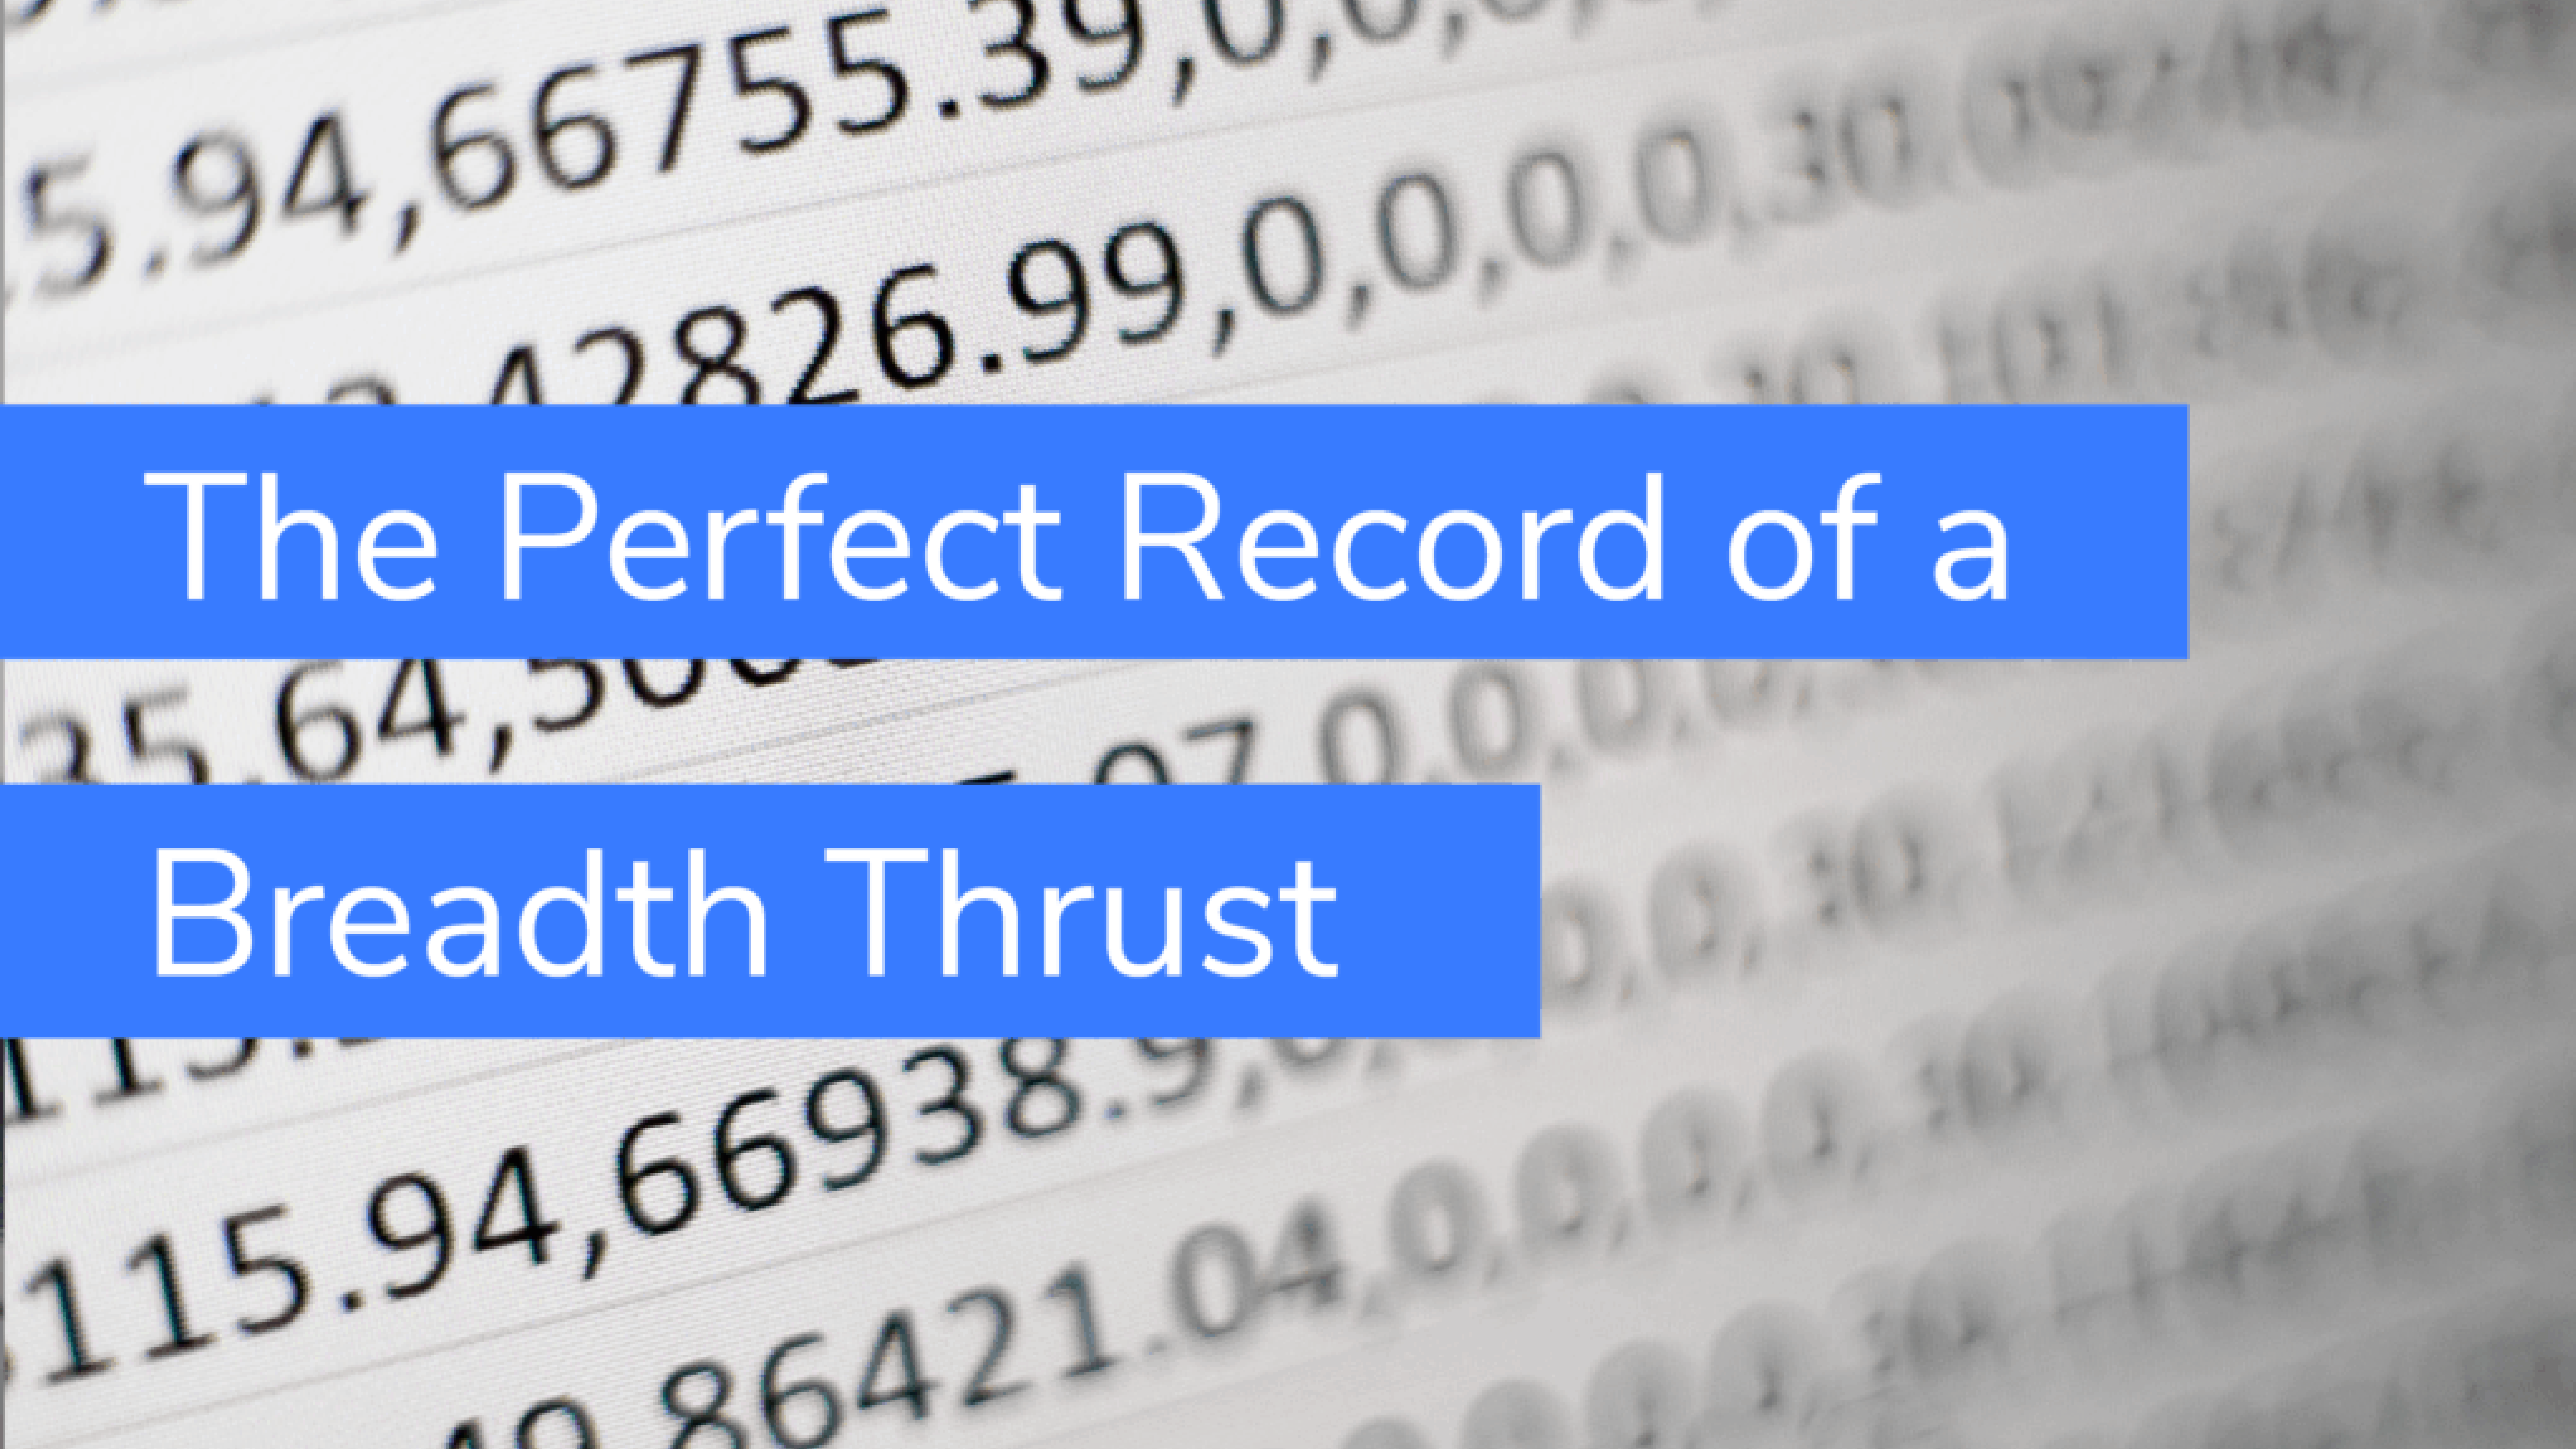 The Perfect Record of a Breadth Thrust